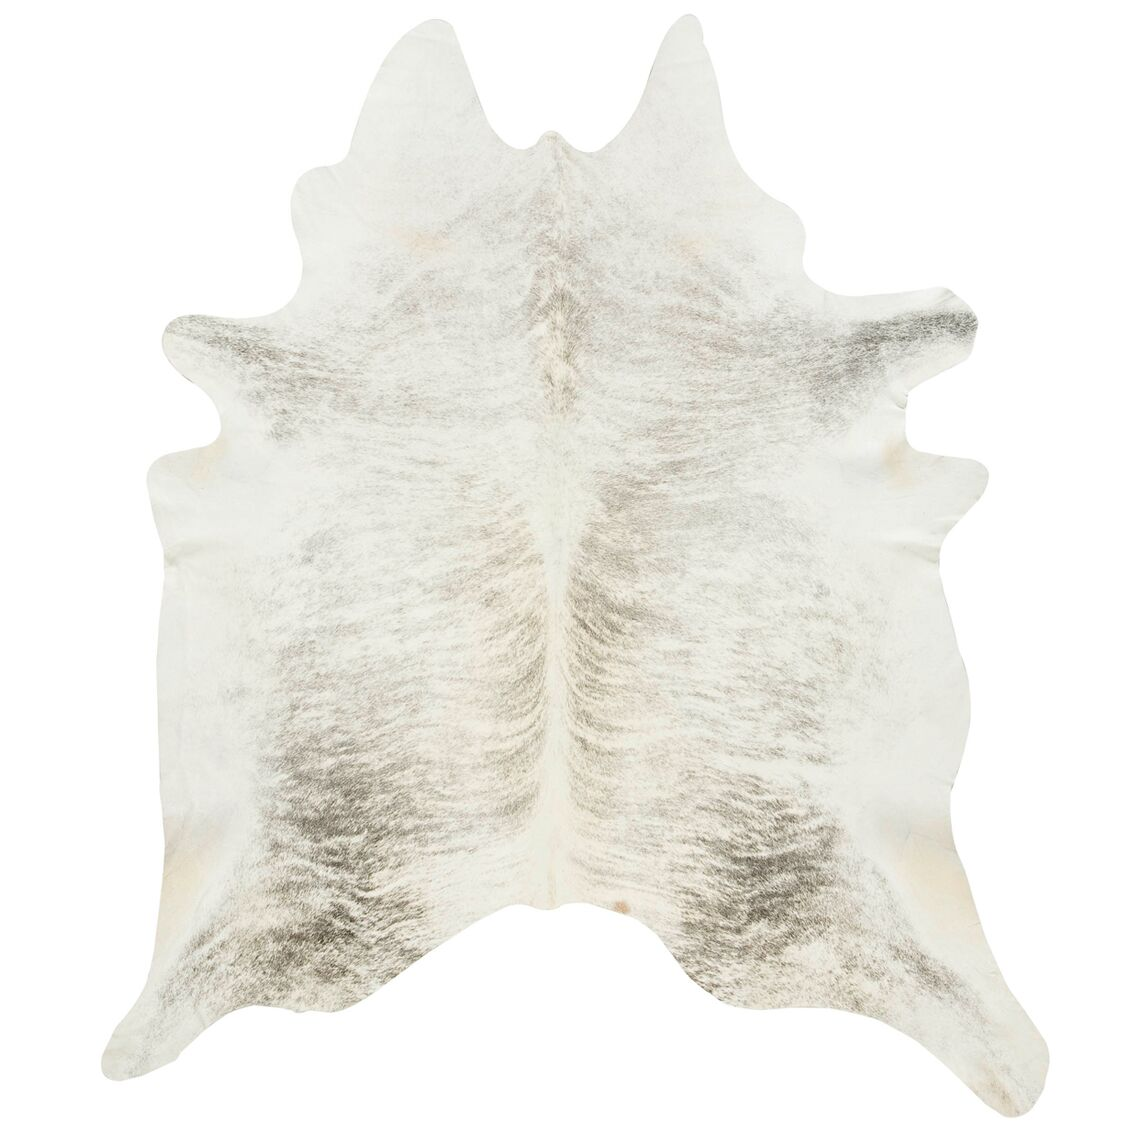 Friedman Light Grey Cowhide Rug Size: Novelty 6' x 6'